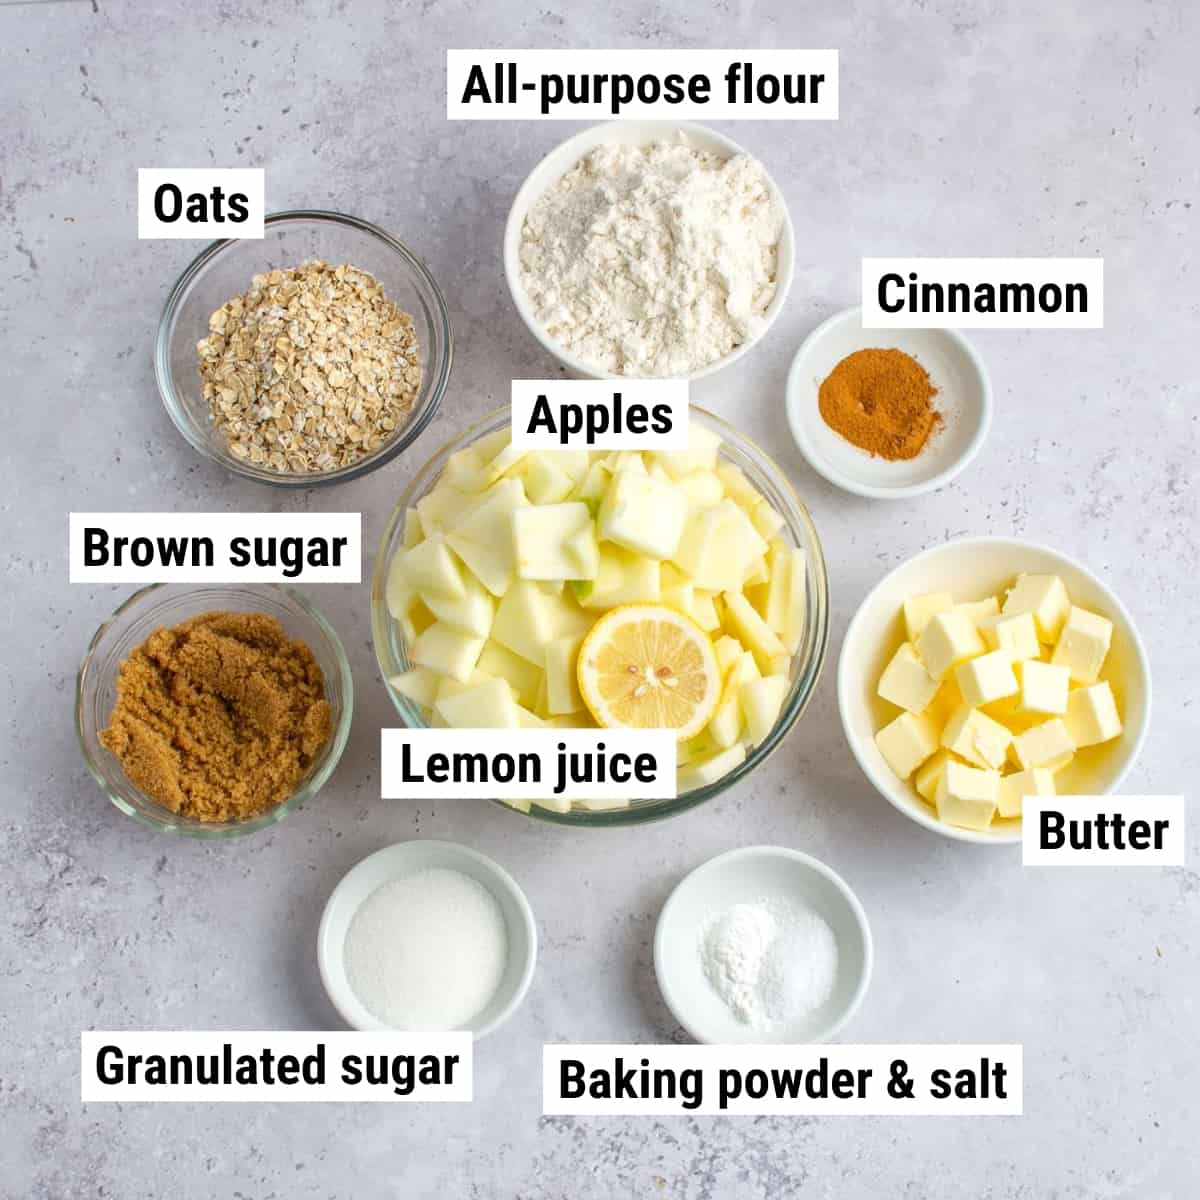 The ingredients to make apple crisp bars laid out on a table.